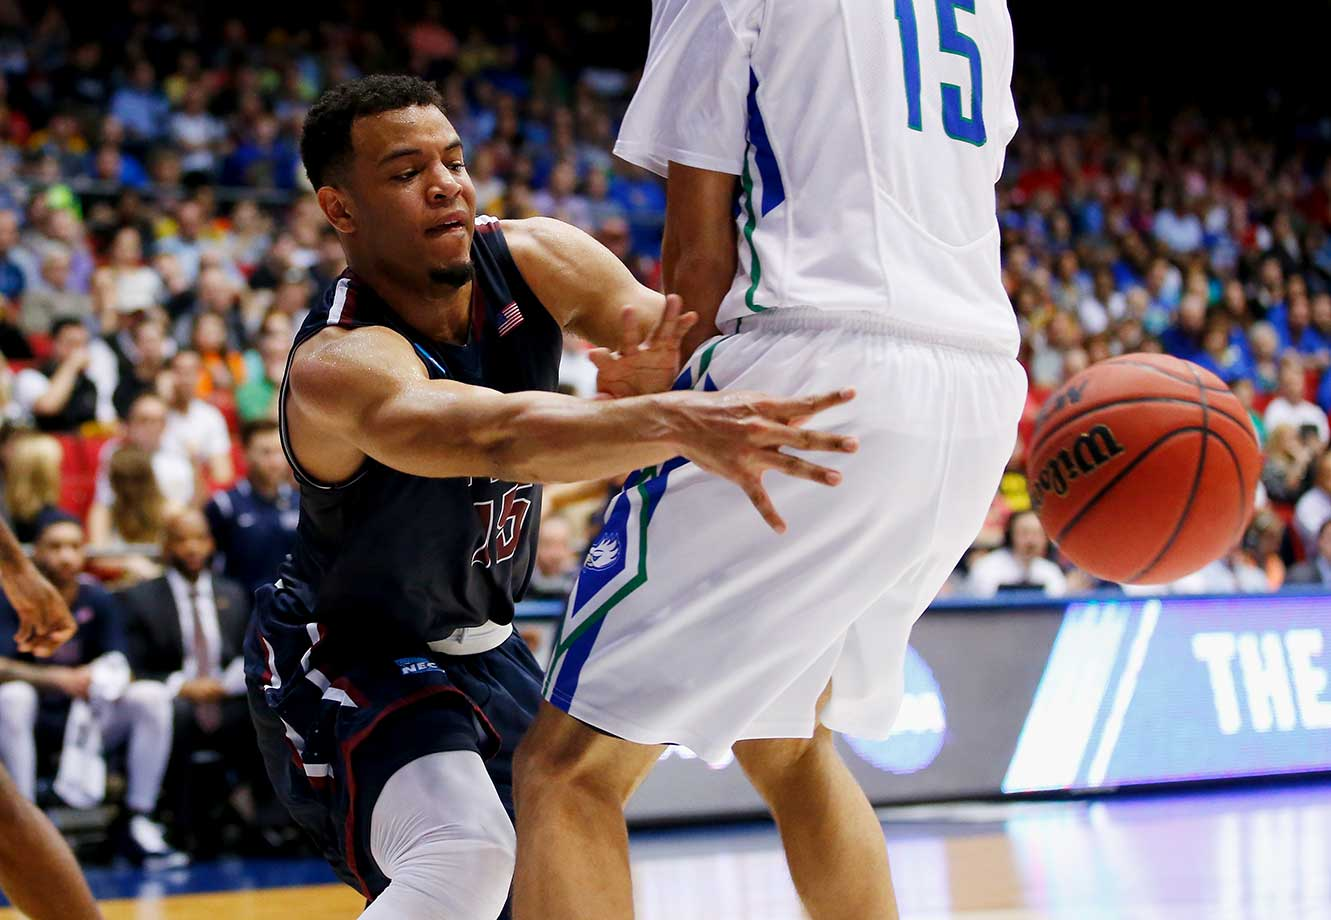 Marques Townes of Fairleigh Dickinson passes the ball against the Florida Gulf Coast Eagles.